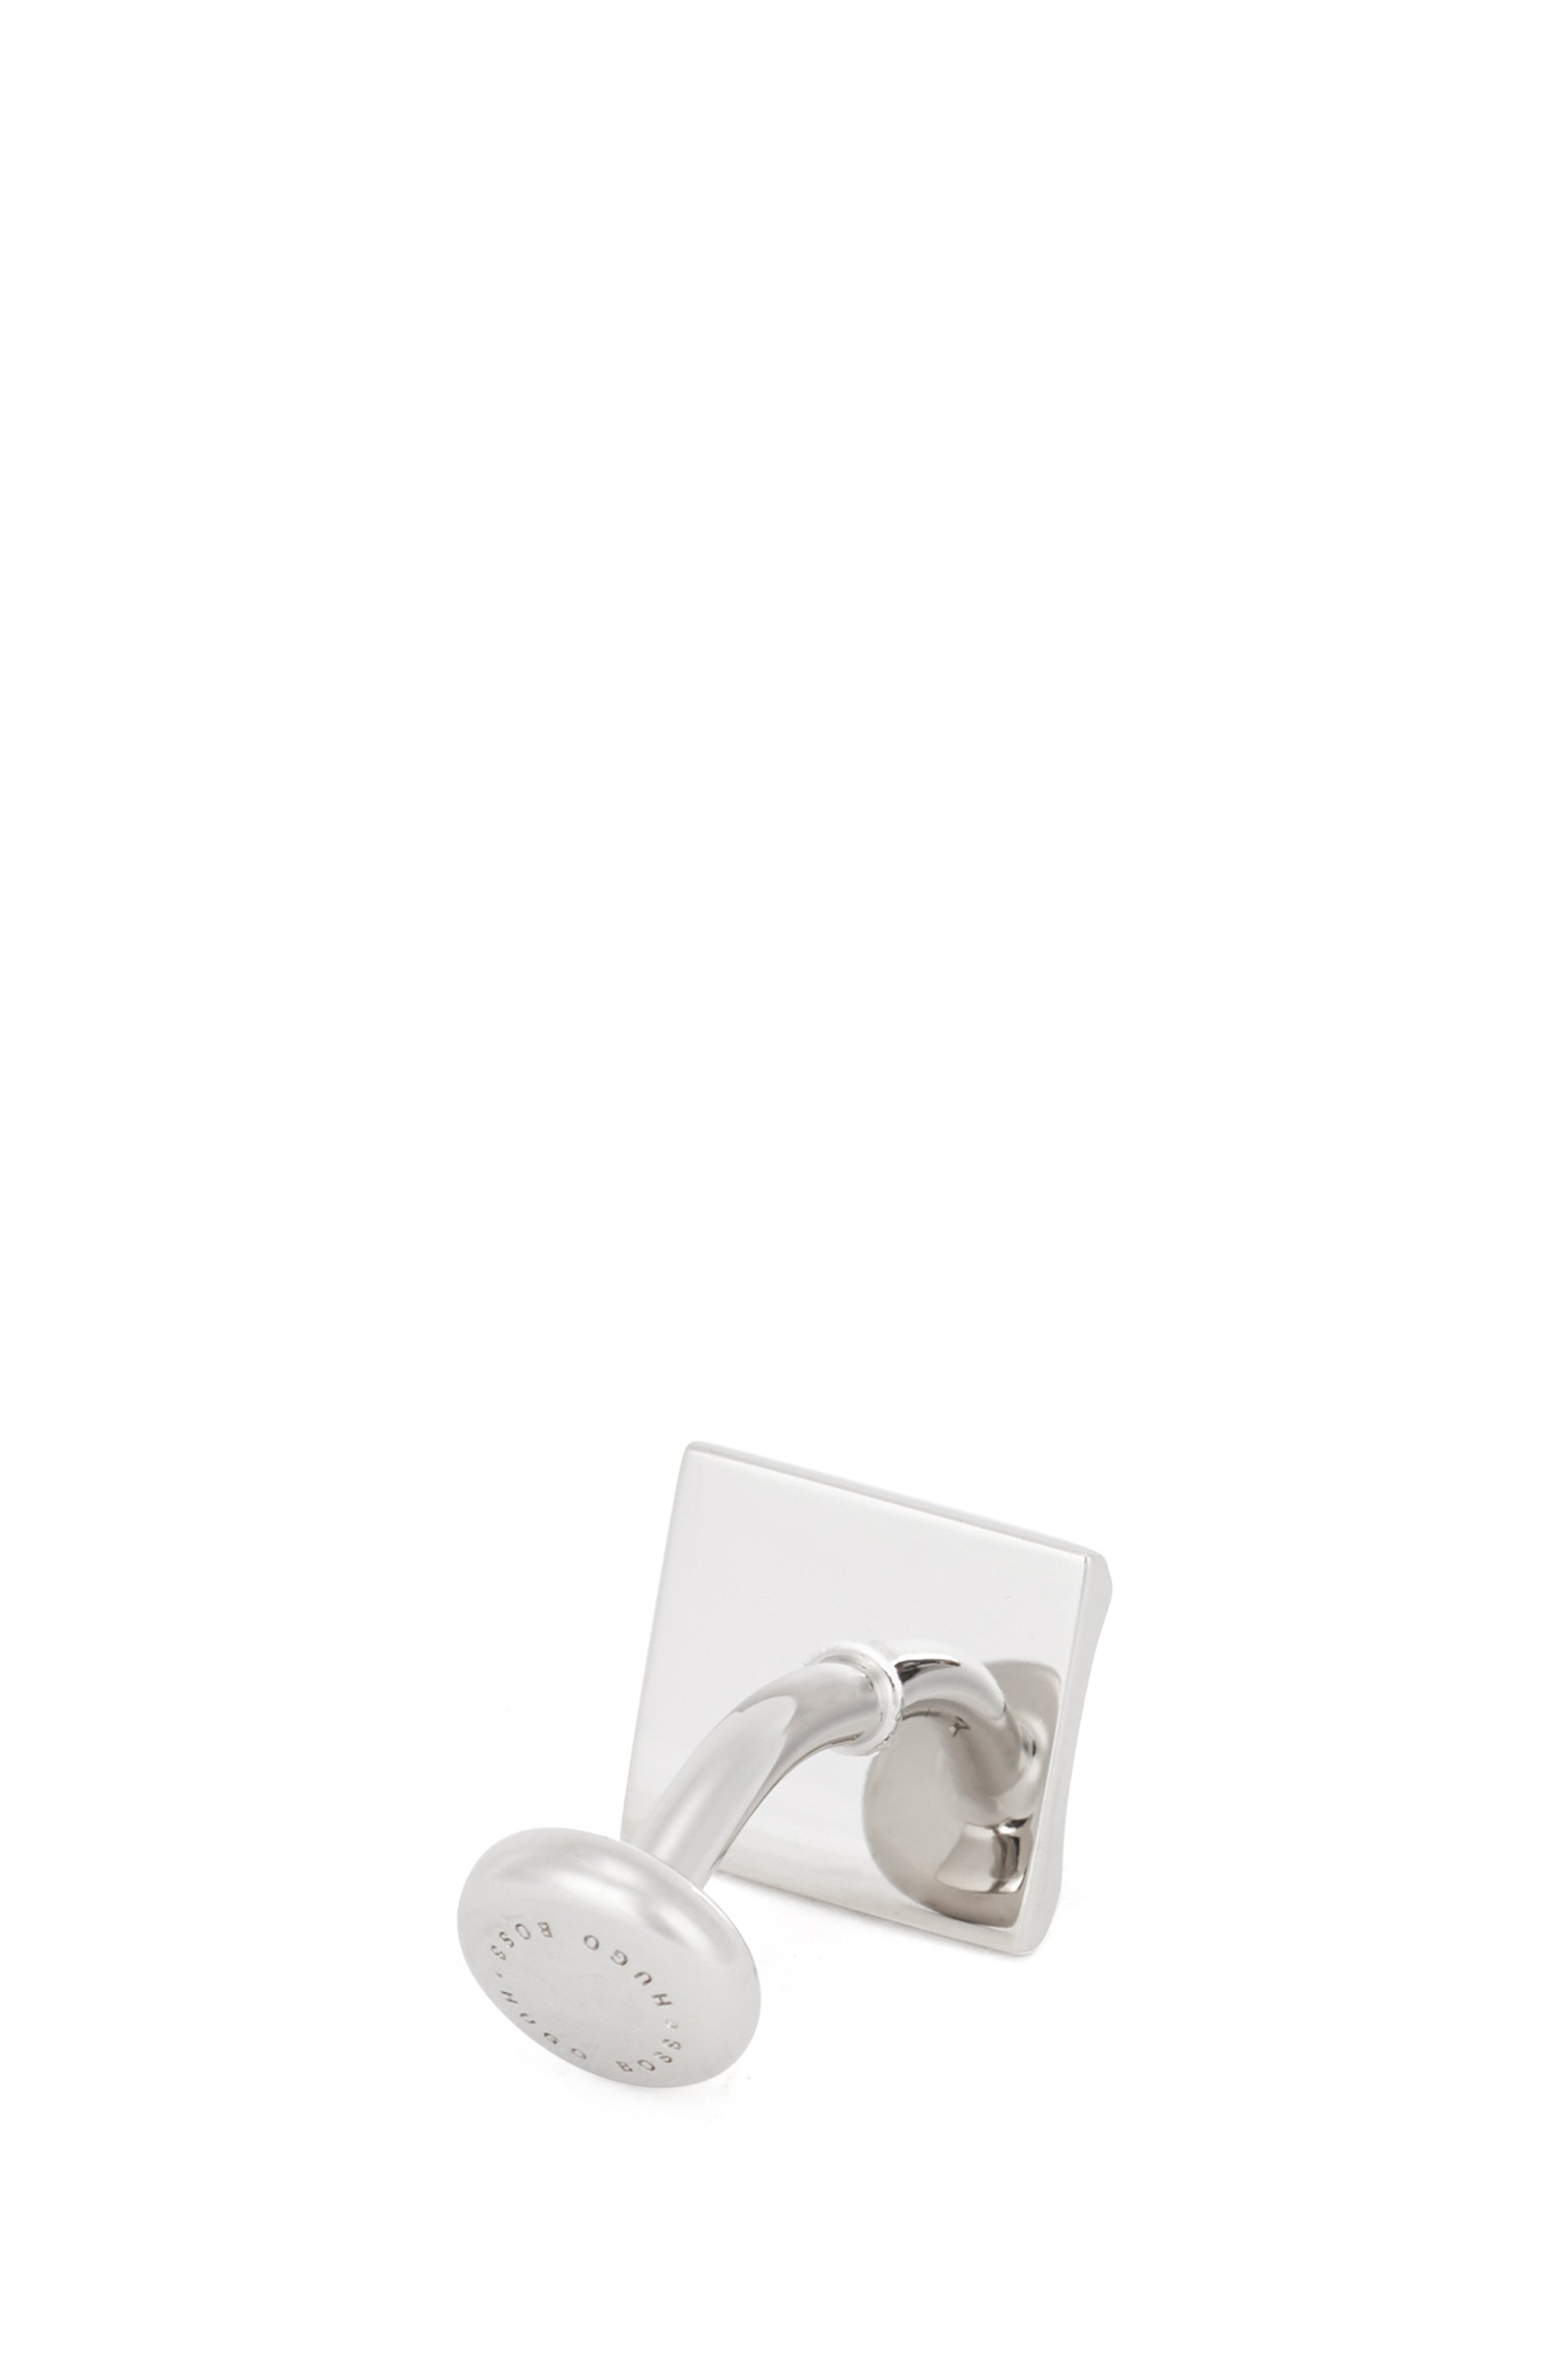 Rectangular cufflinks with curved frame and logo enamel insert